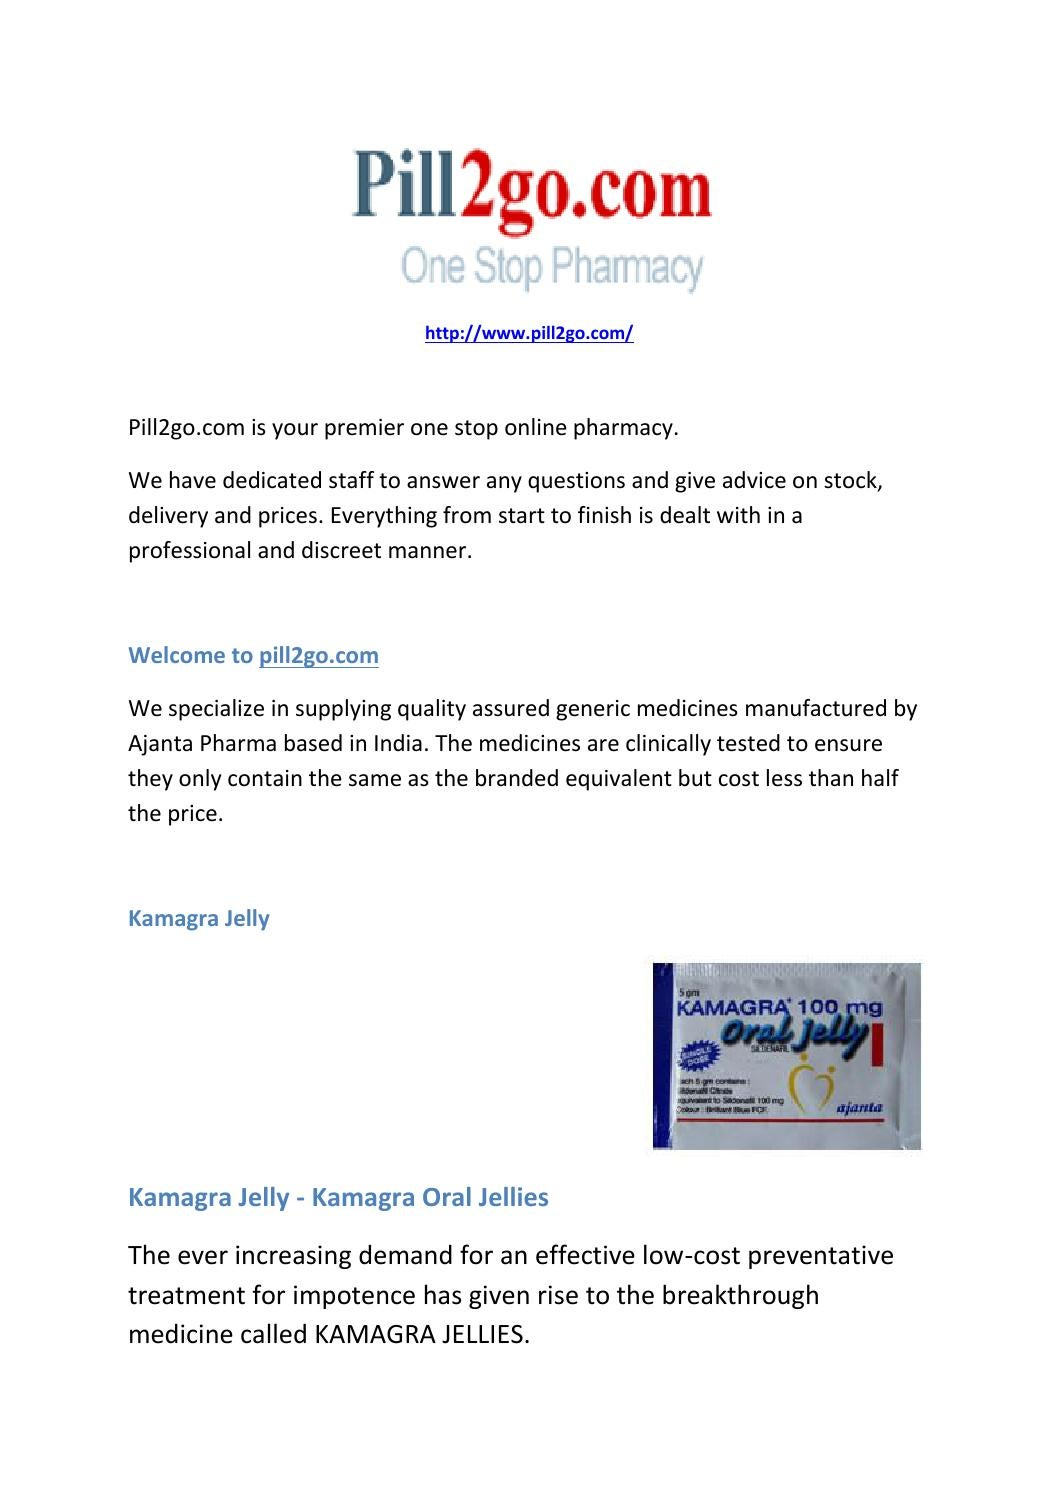 kamagra oral jelly low cost